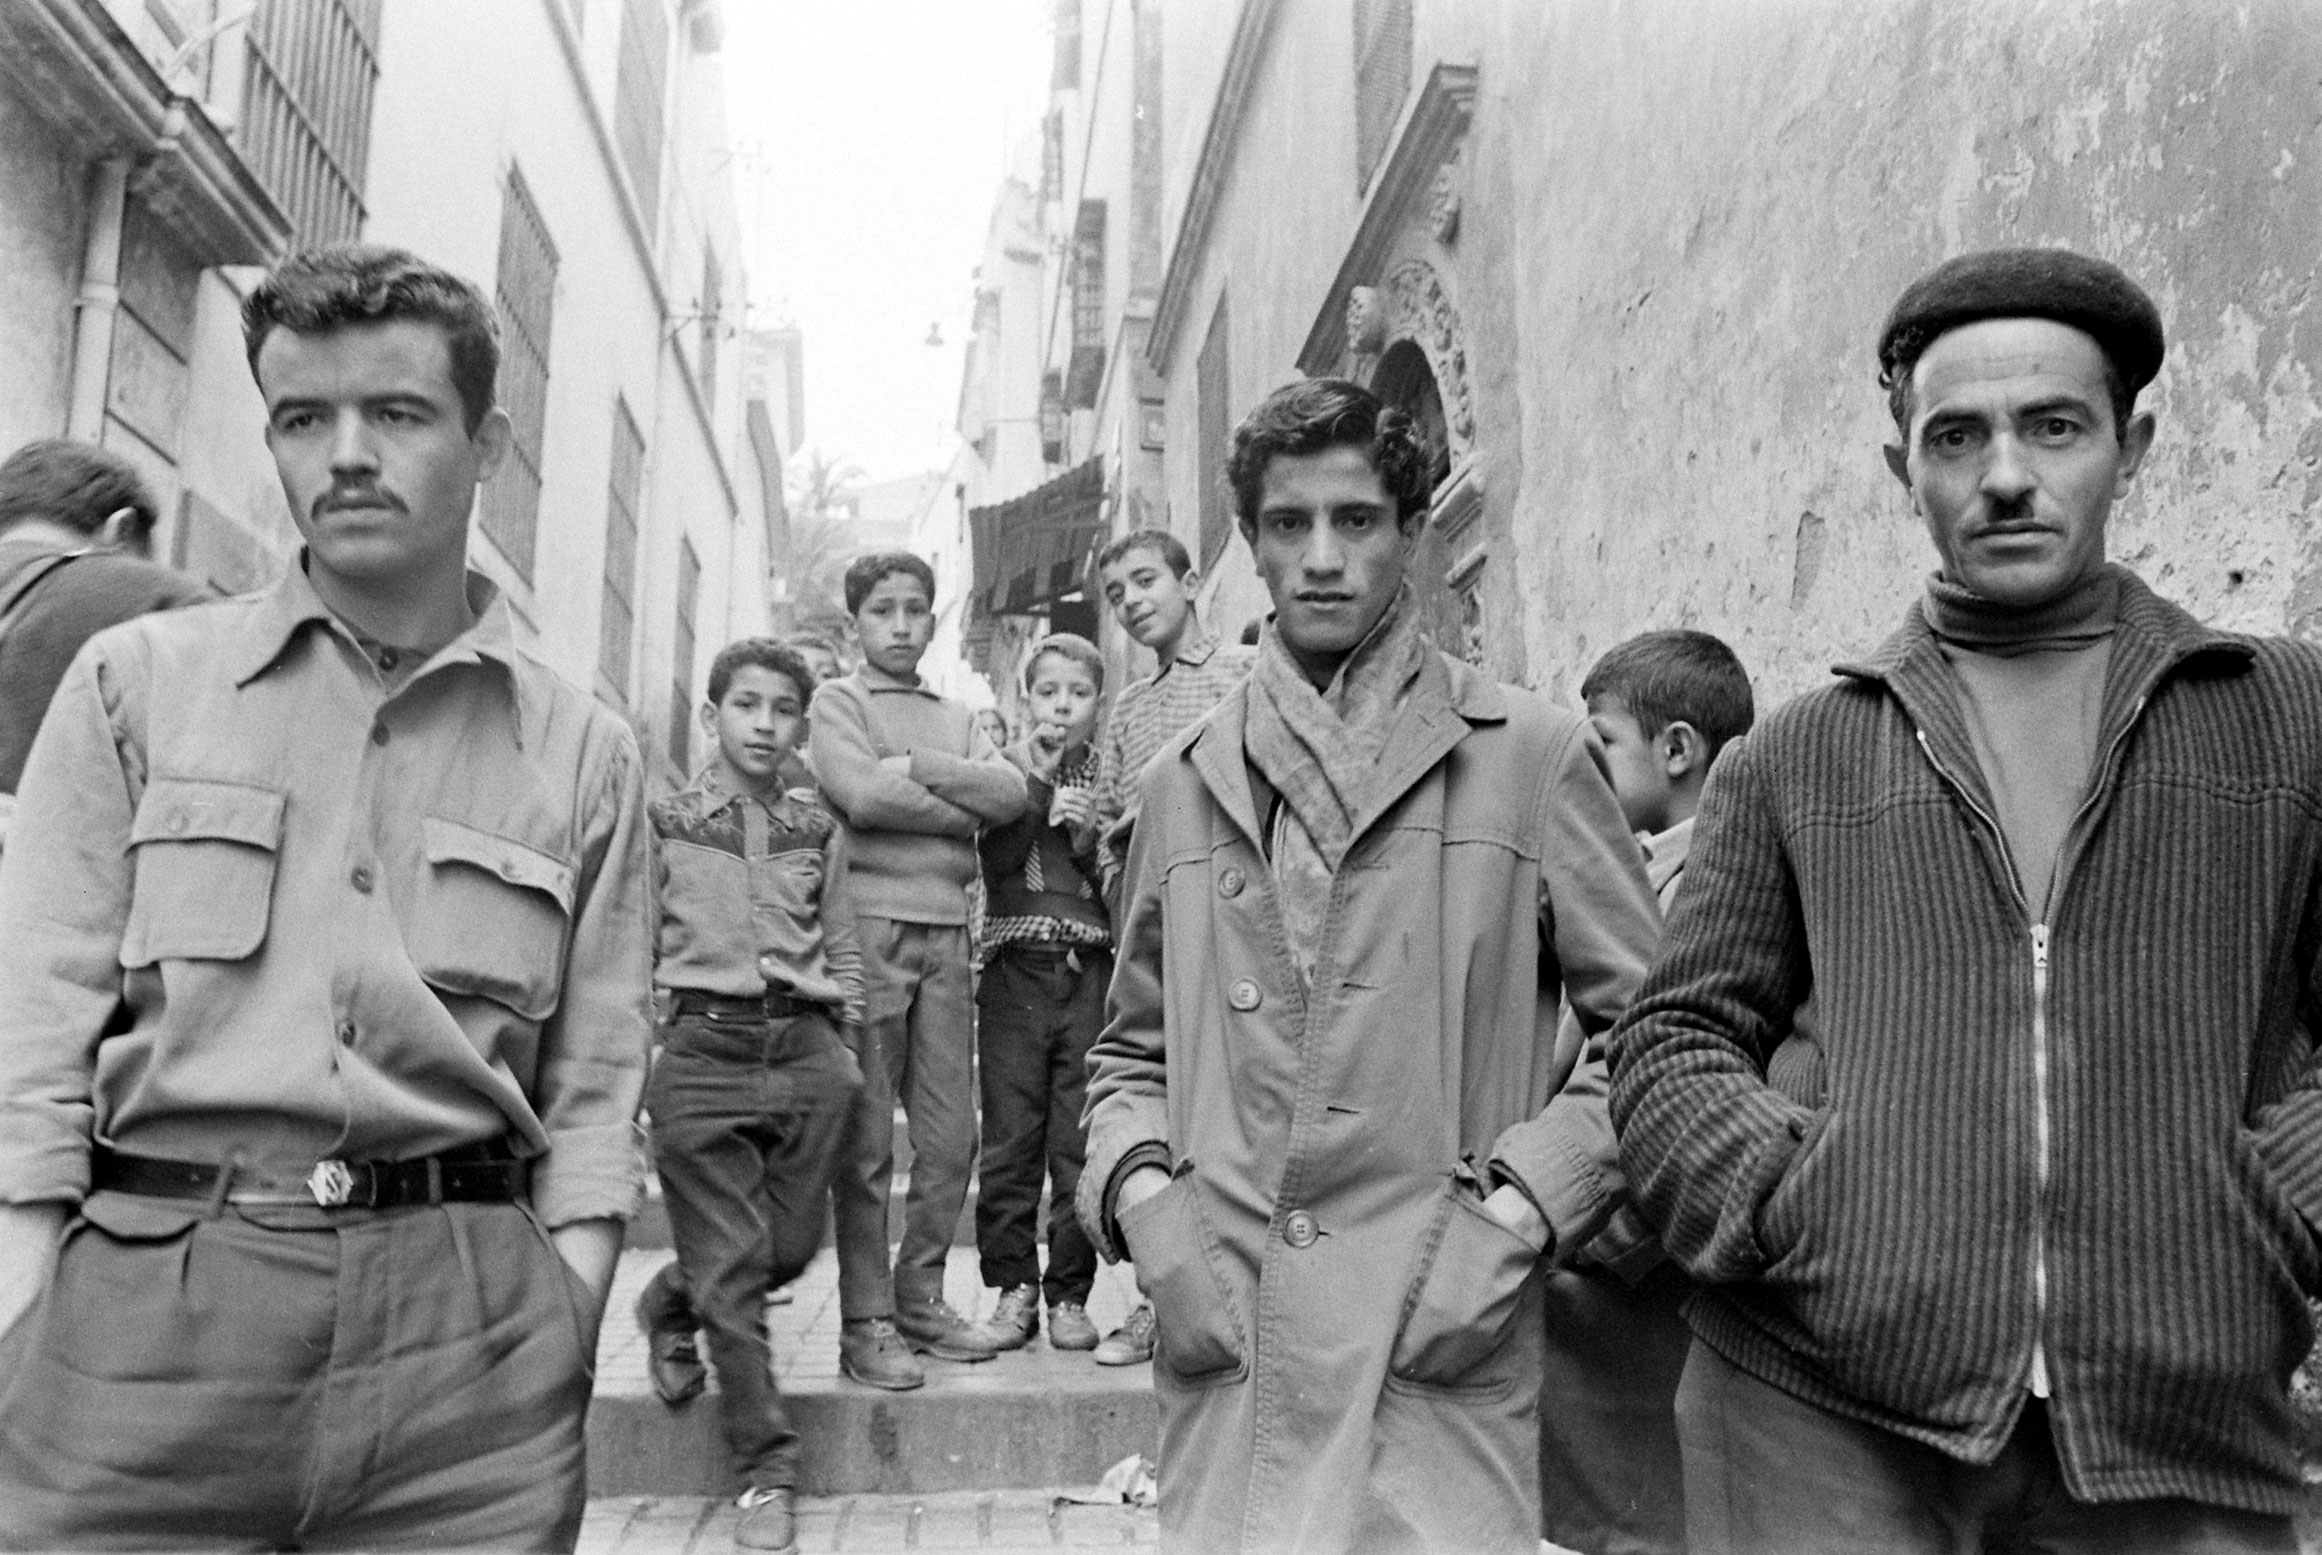 Not published in LIFE. Algiers, March 1962.